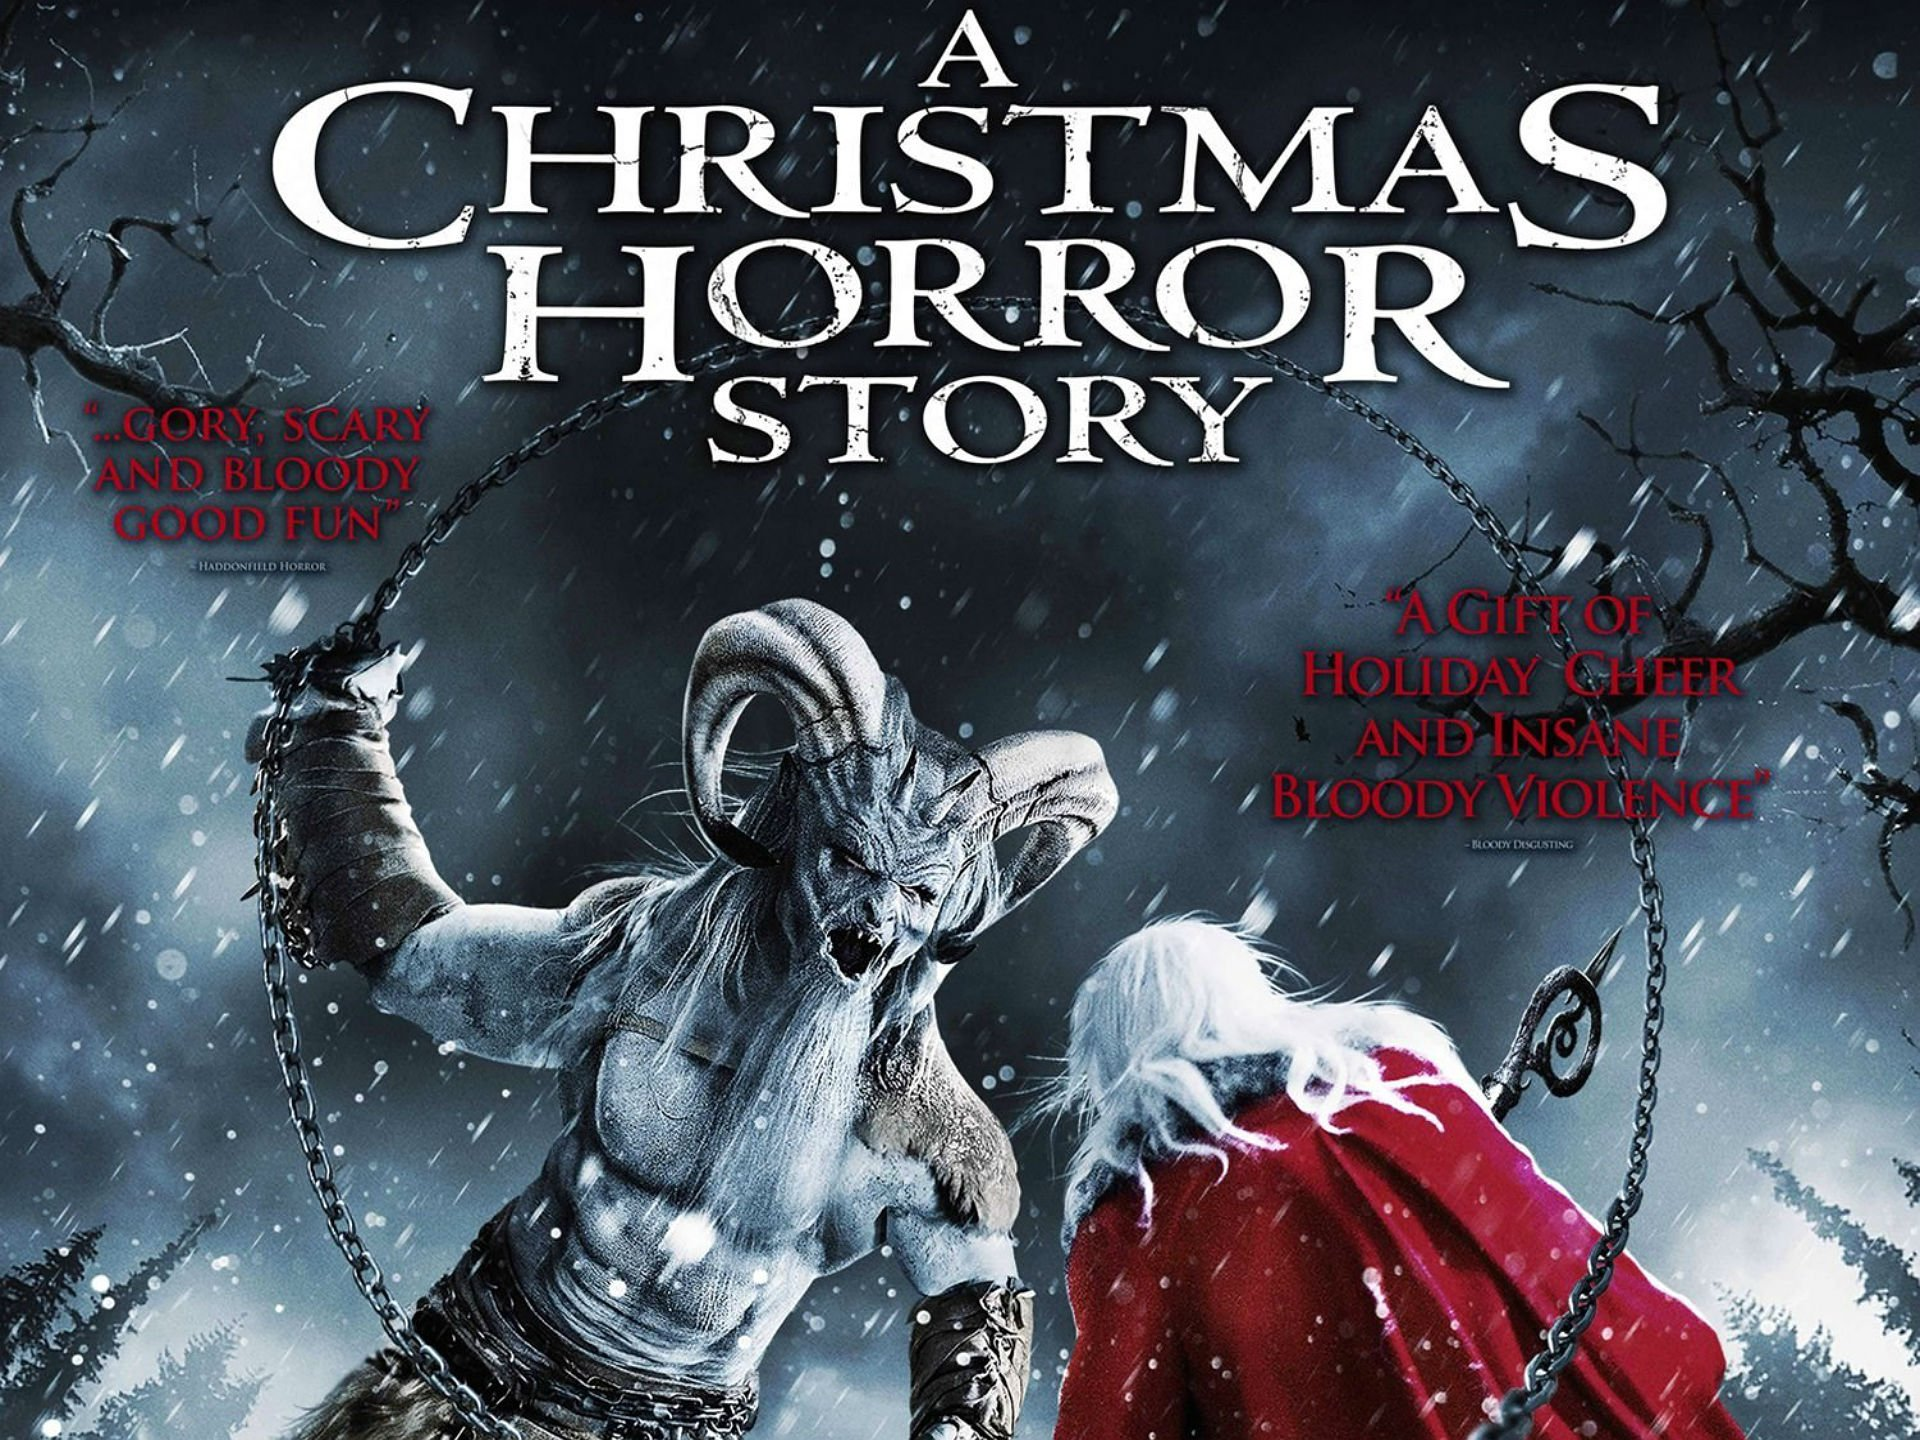 KRAMPUS monster demon evil horror dark occult christmas story ...